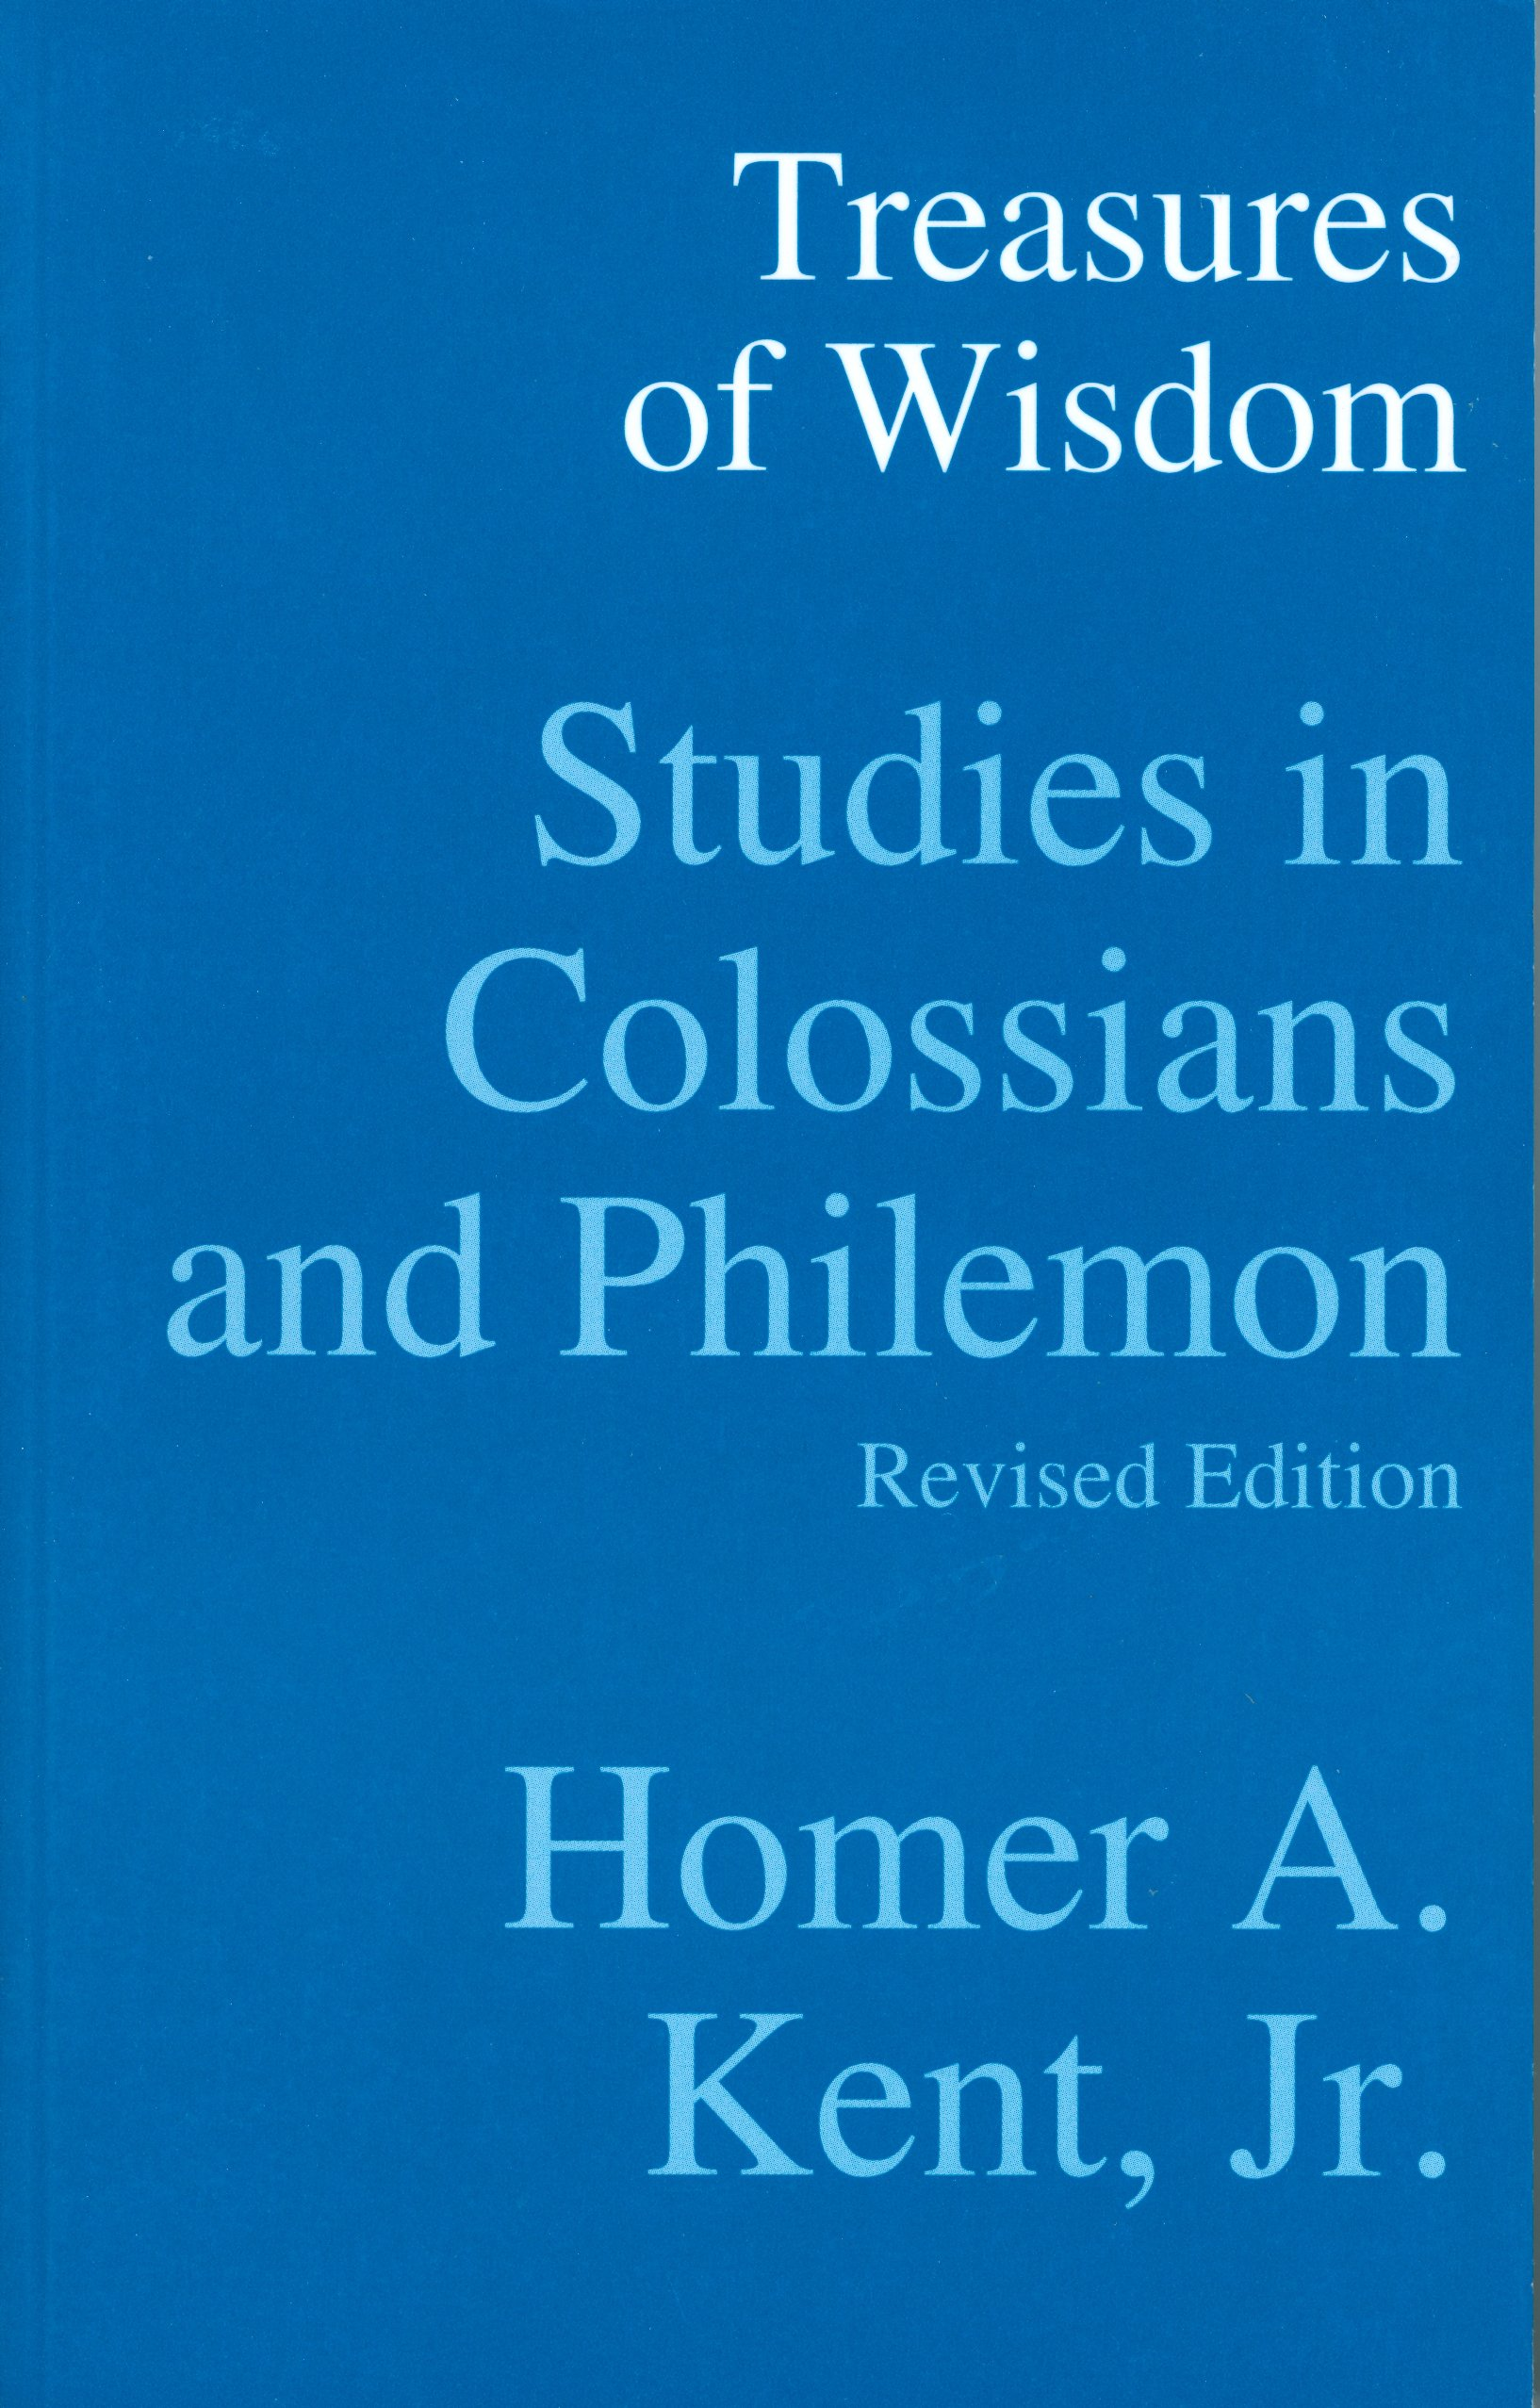 Read Online Treasures of Wisdom: Studies in Colossians and Philemon (Kent Collection) ebook